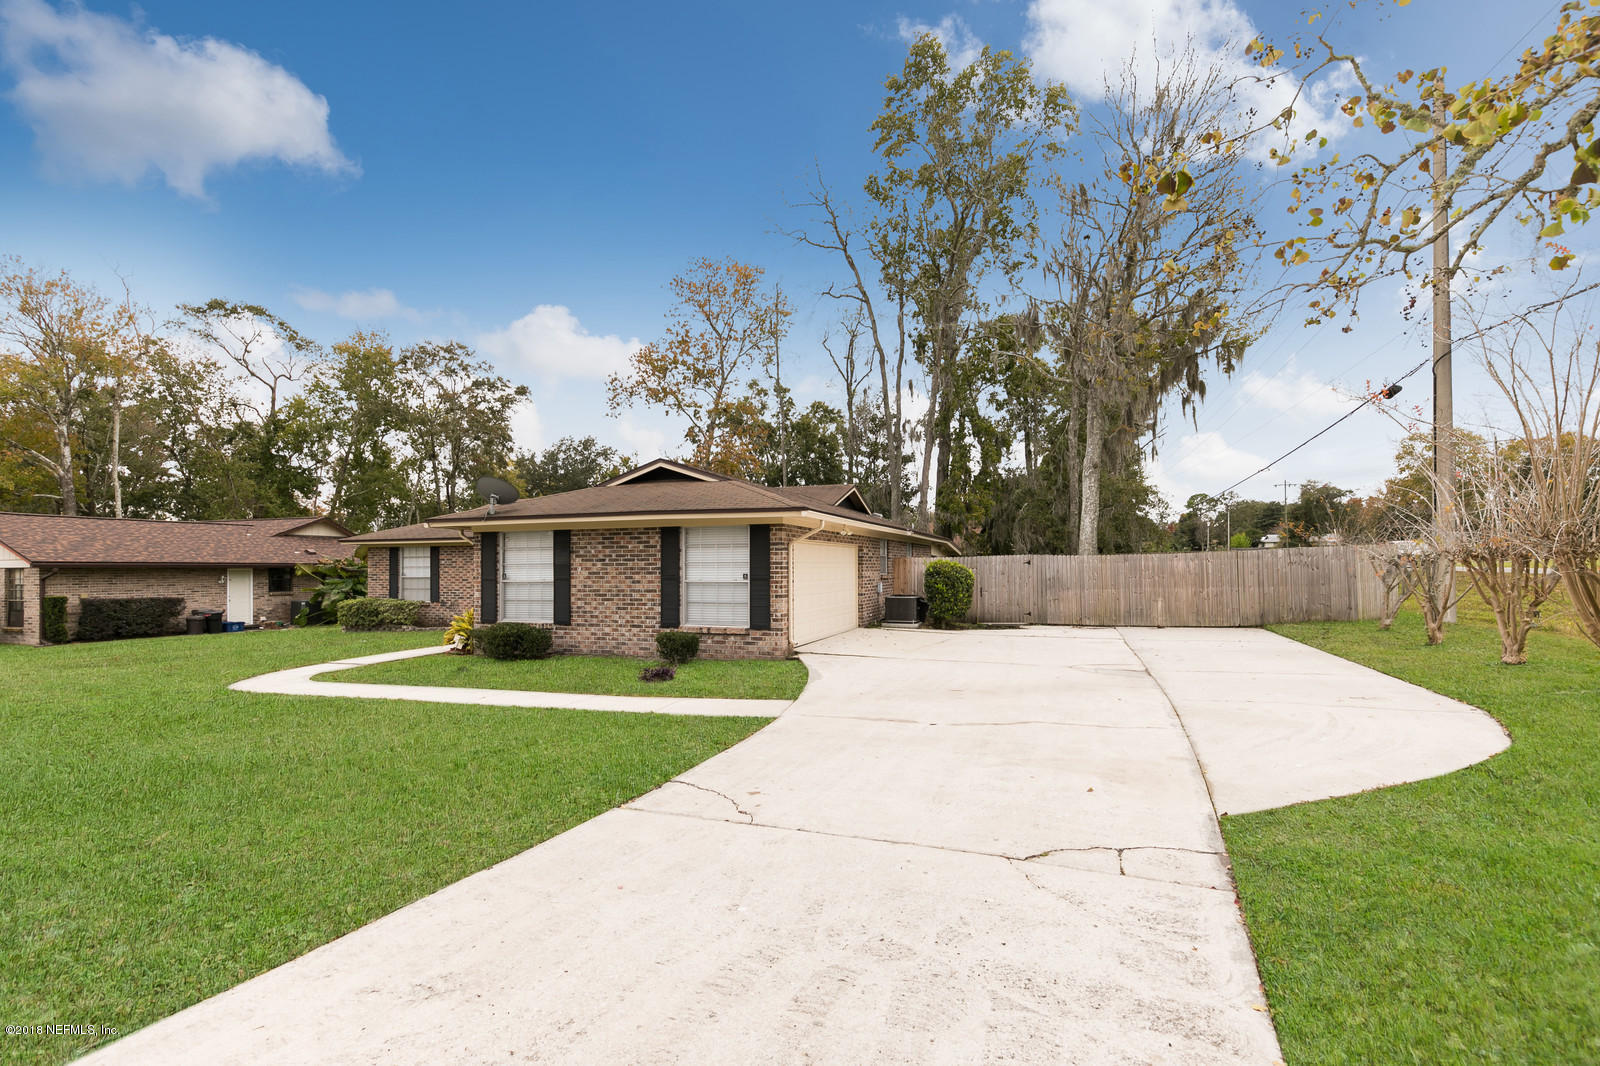 2387 TIMBER, ORANGE PARK, FLORIDA 32065, 3 Bedrooms Bedrooms, ,2 BathroomsBathrooms,Residential - single family,For sale,TIMBER,970950